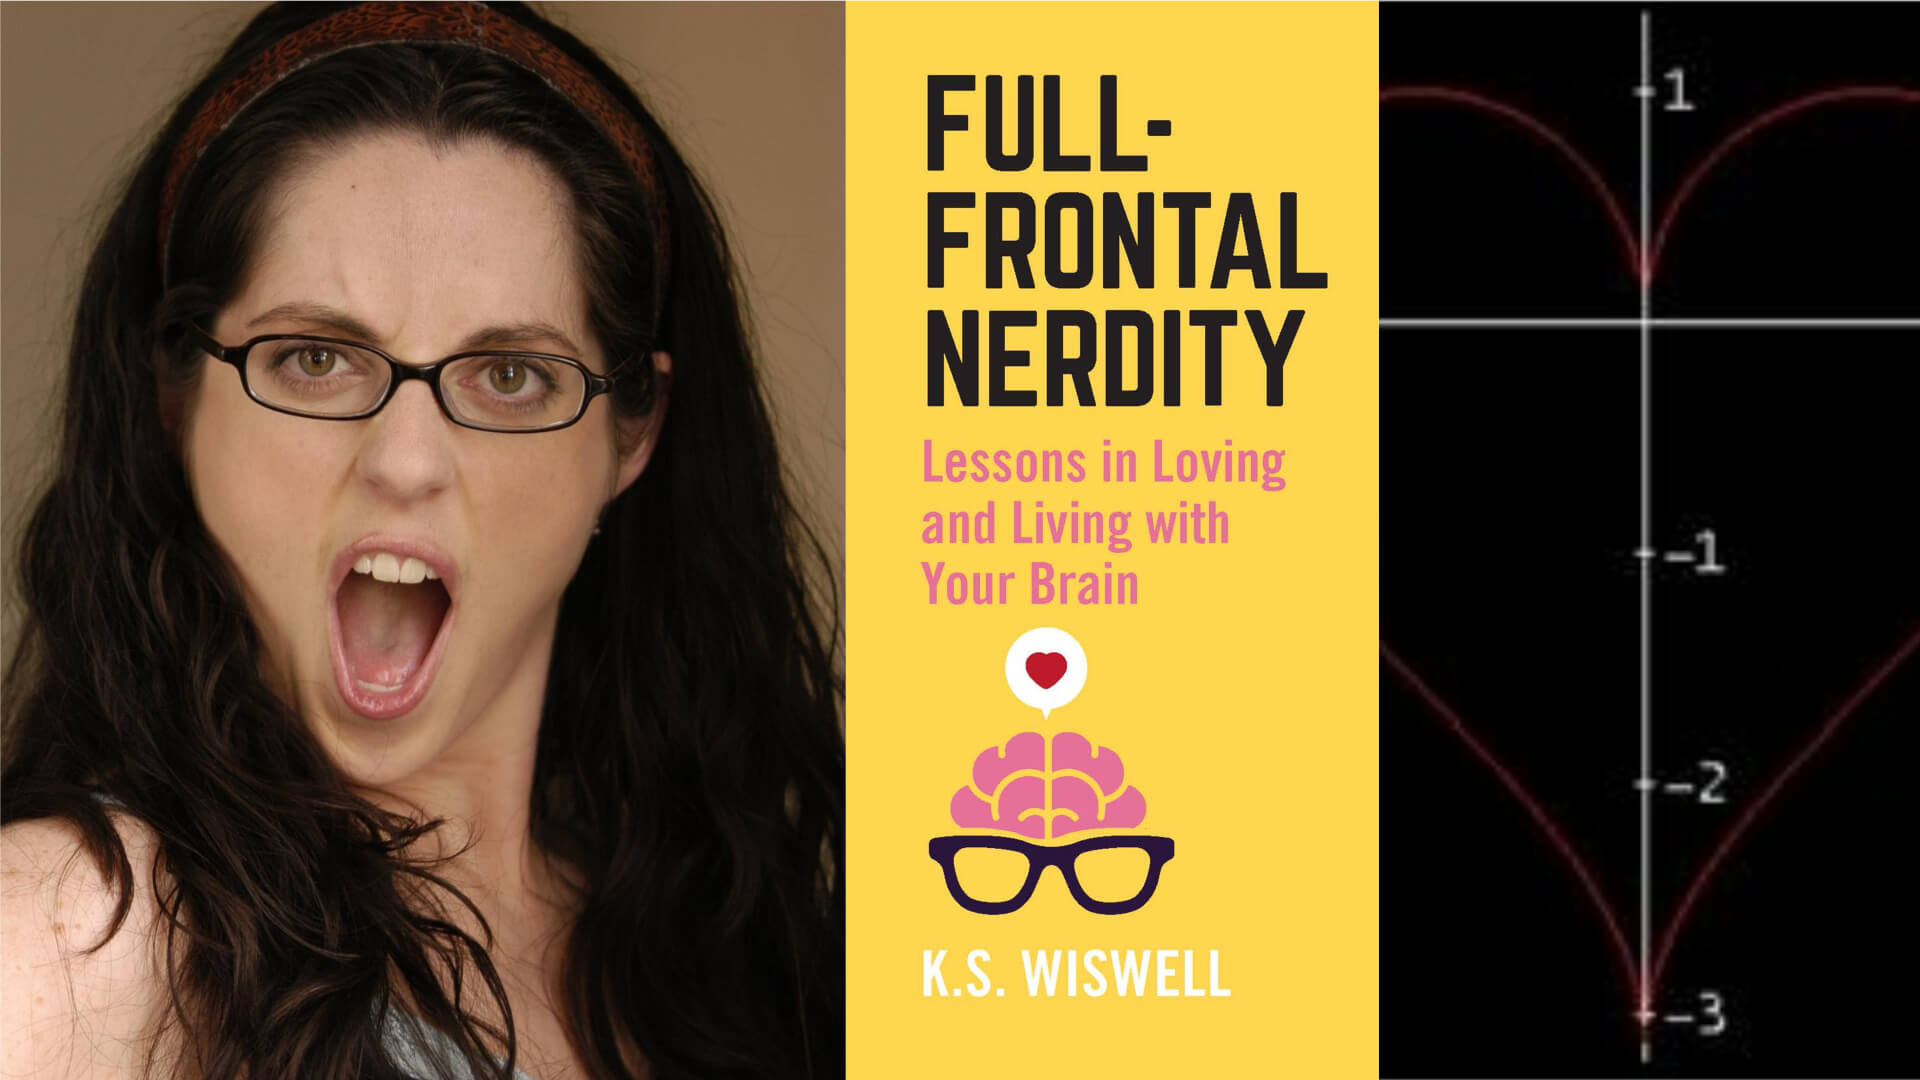 Full-Frontal Nerdity: Lessons in Loving and Living with Your Brain Review